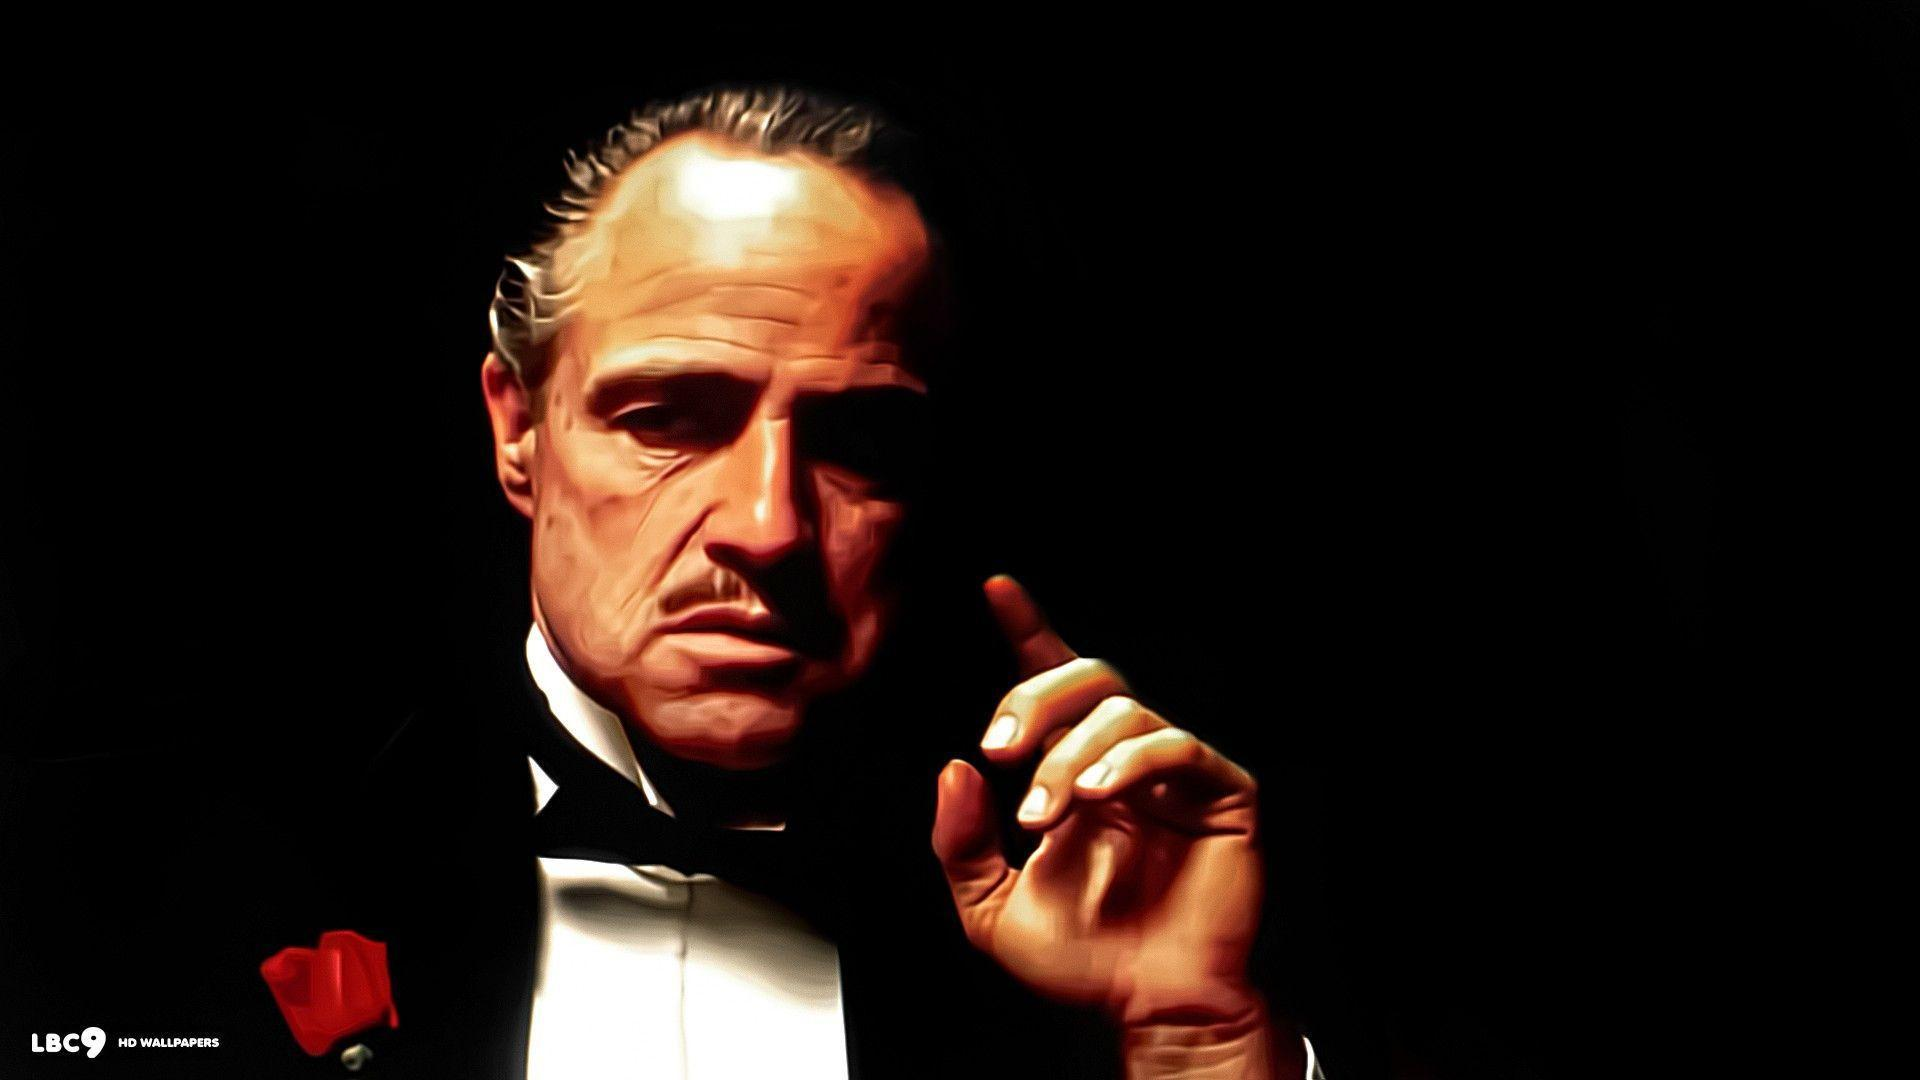 godfather wallpaper 2/2 | movie hd backgrounds